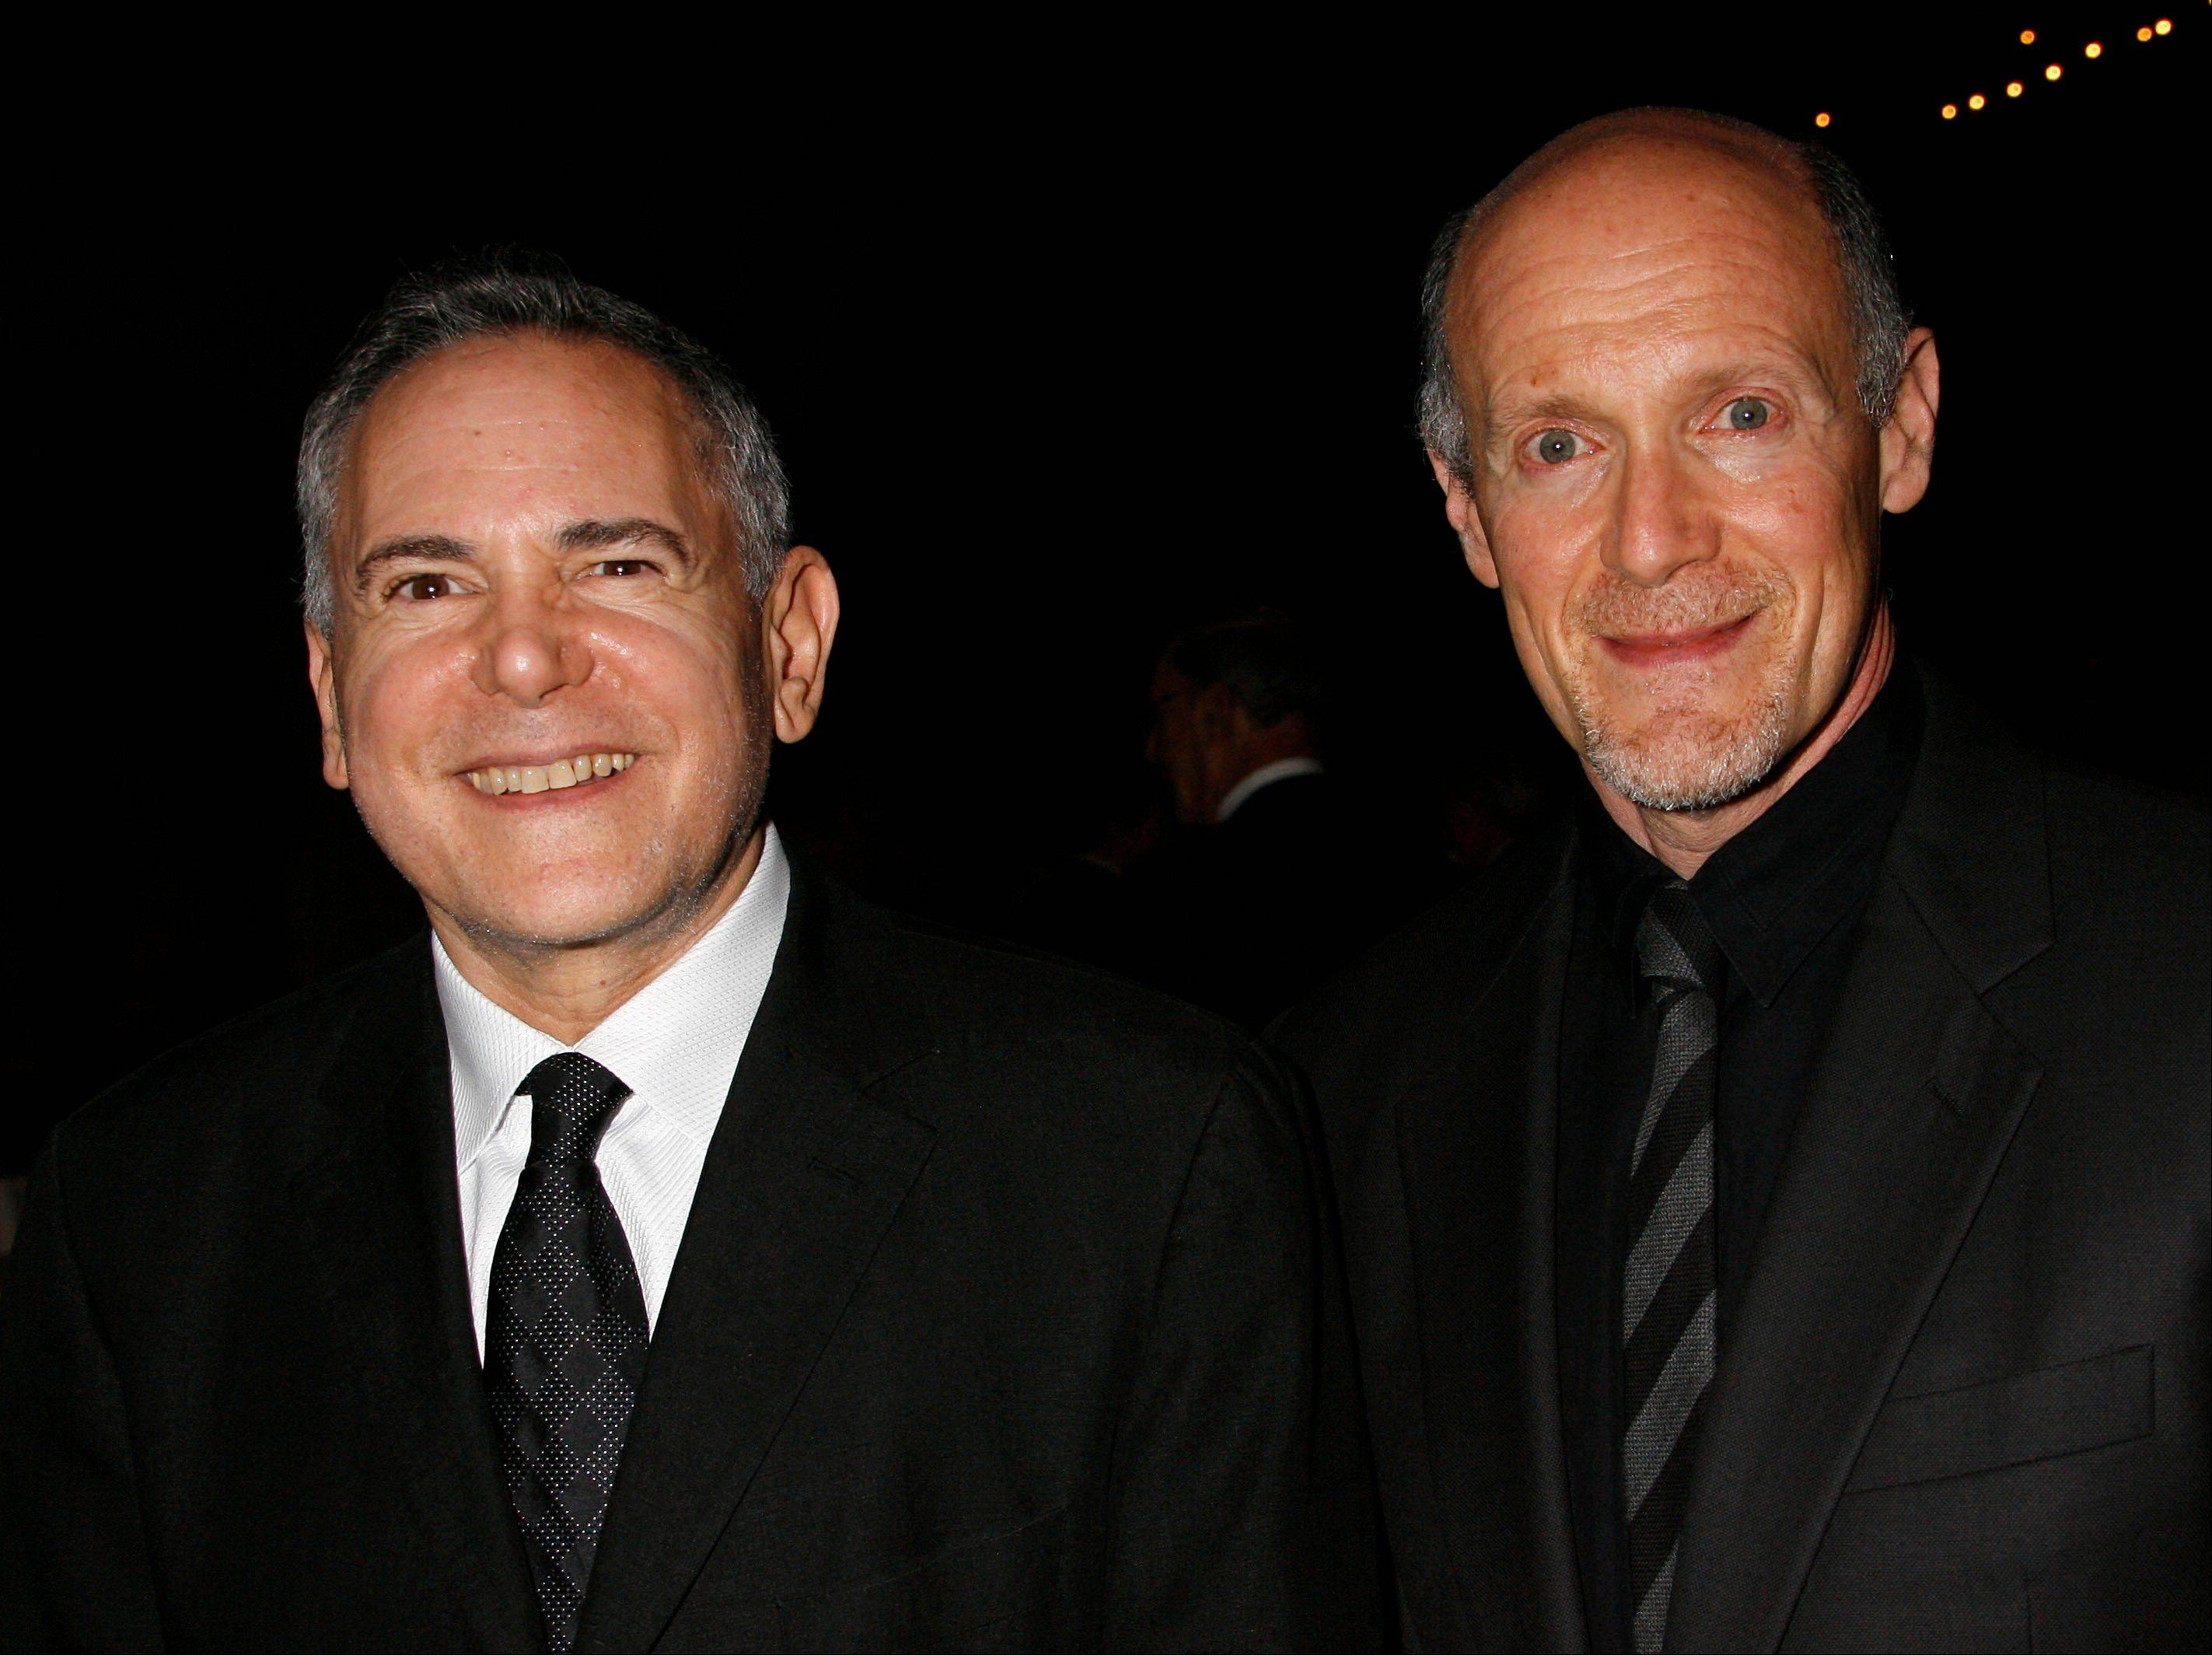 Craig Zadan, left, and Neil Meron, producers of the Academy Awards, said Monday that Renee Zellweger, Catherine Zeta Jones, Queen Latifah and Richard Gere will return to the stage where �Chicago� won best picture in 2003.